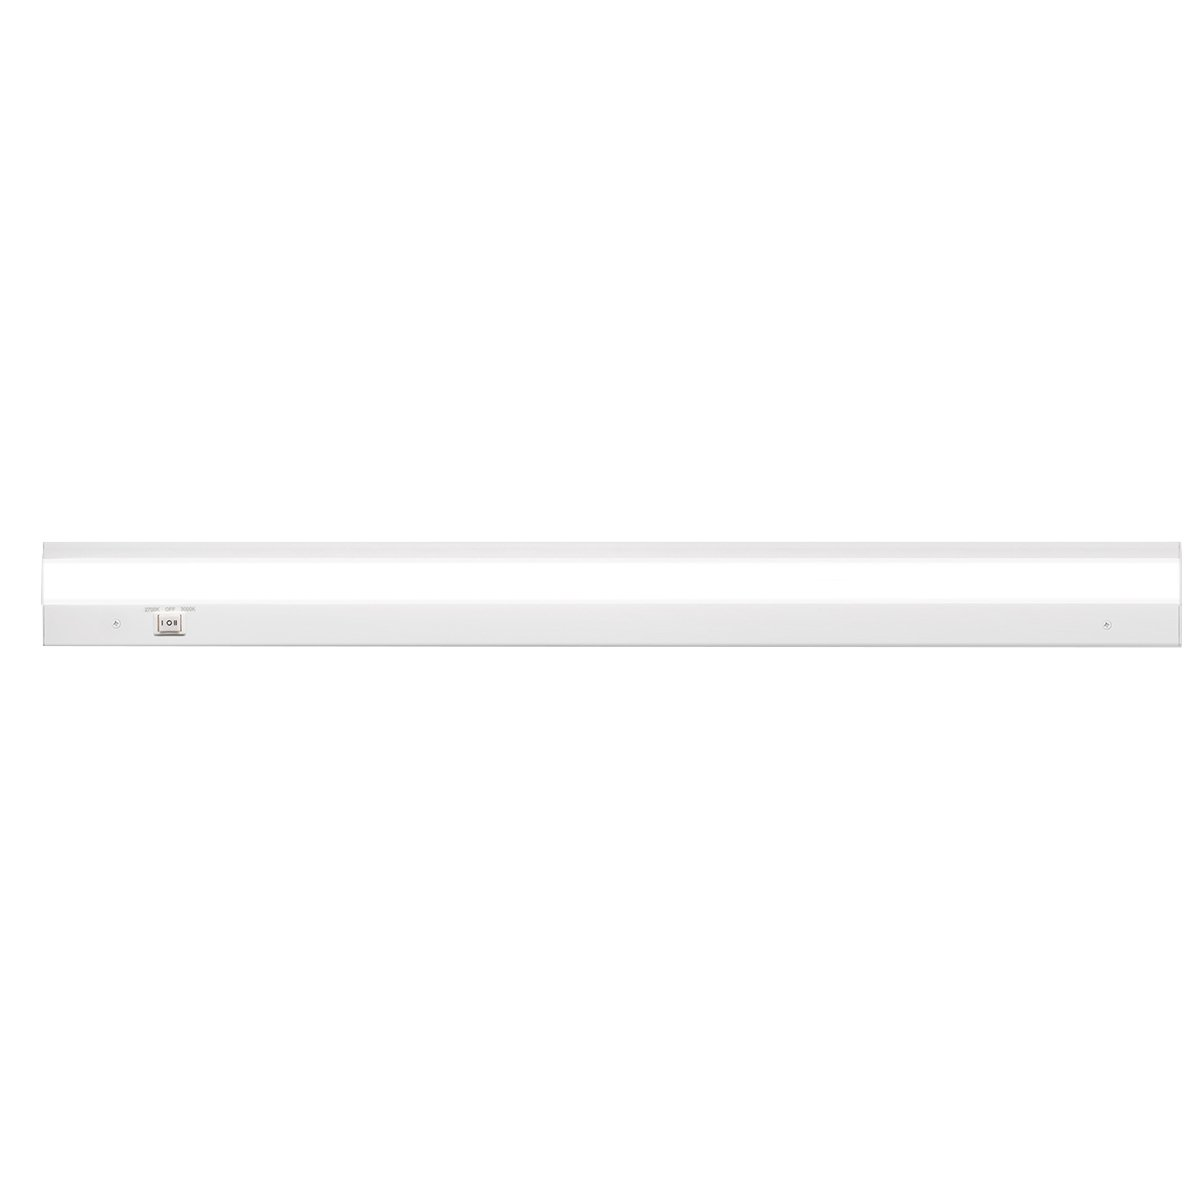 WAC Lighting BA-ACLED42-27/30WT Duo ACLED Dual Color Temp Bar, White